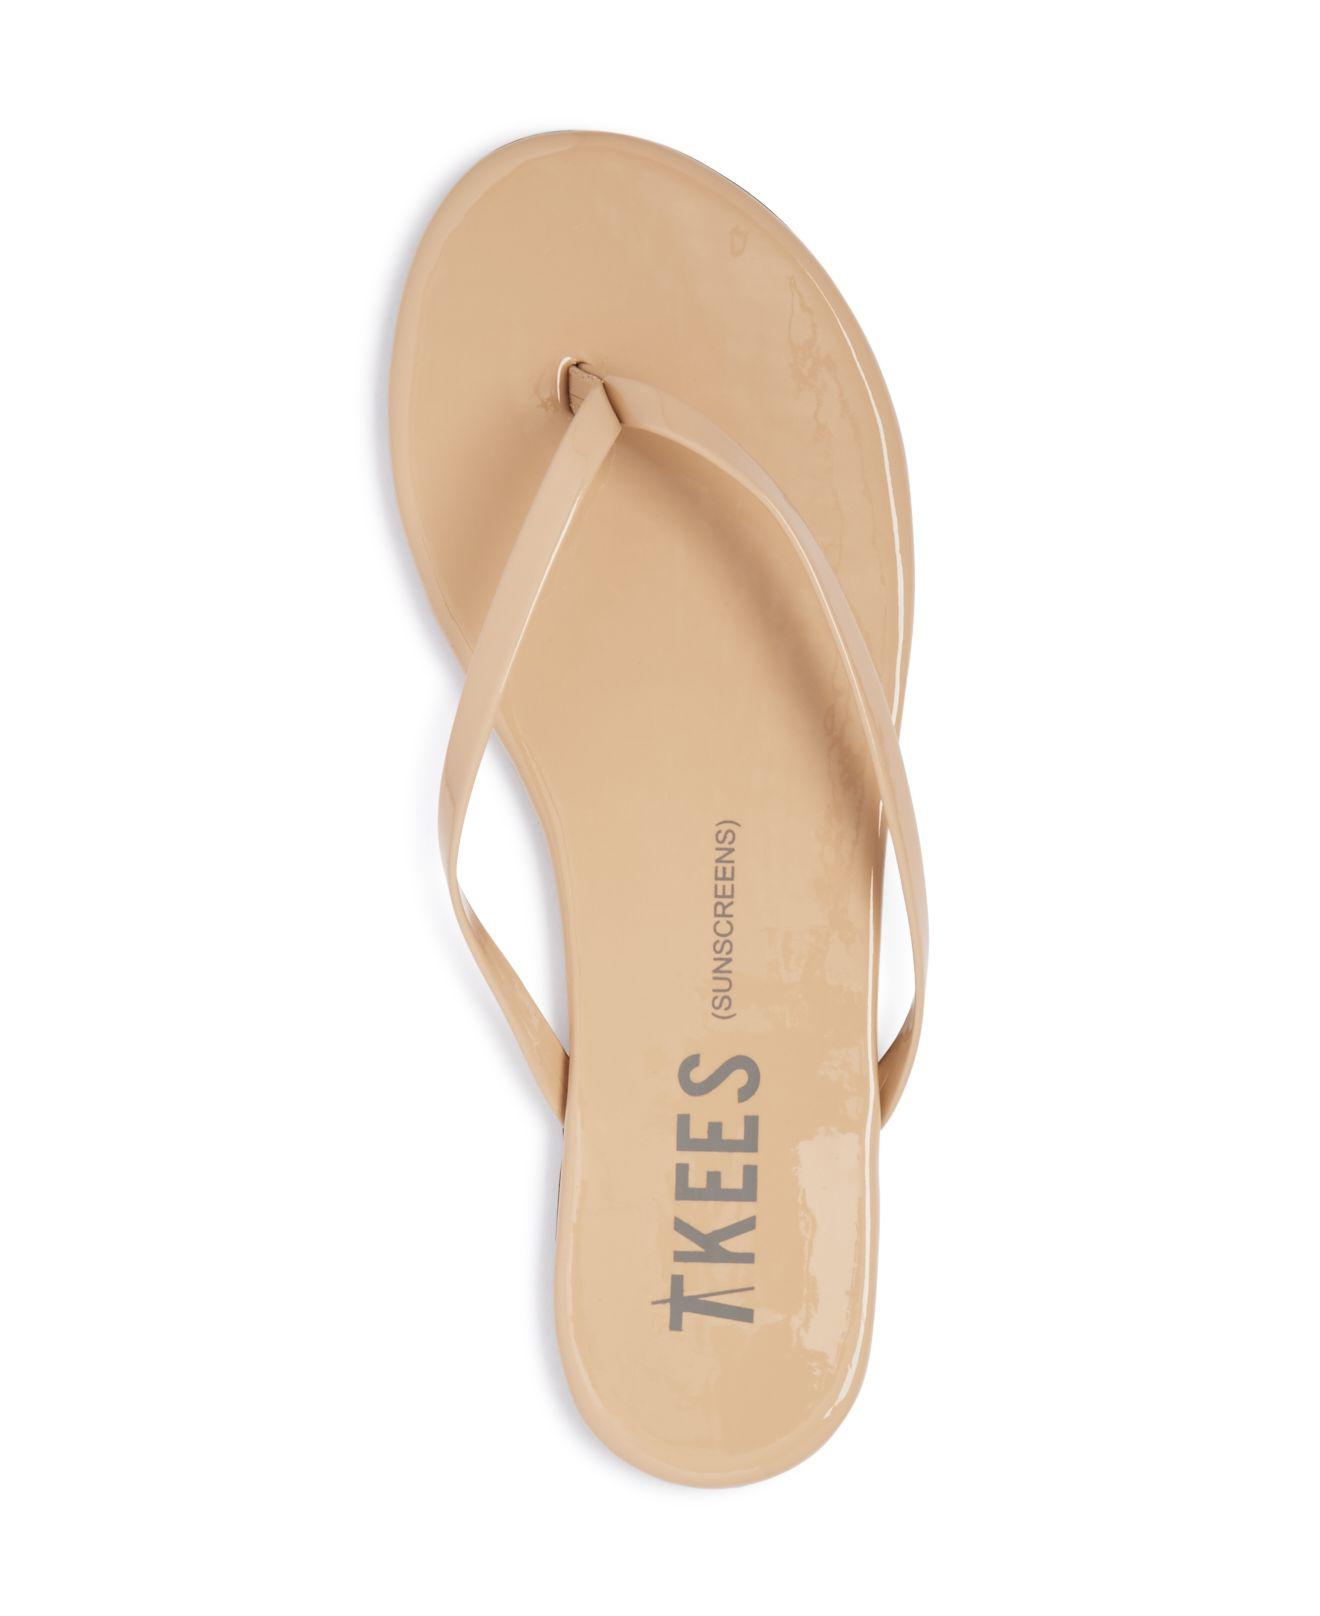 Tkees Patent Leather Flip-Flops In Natural - Lyst-3037